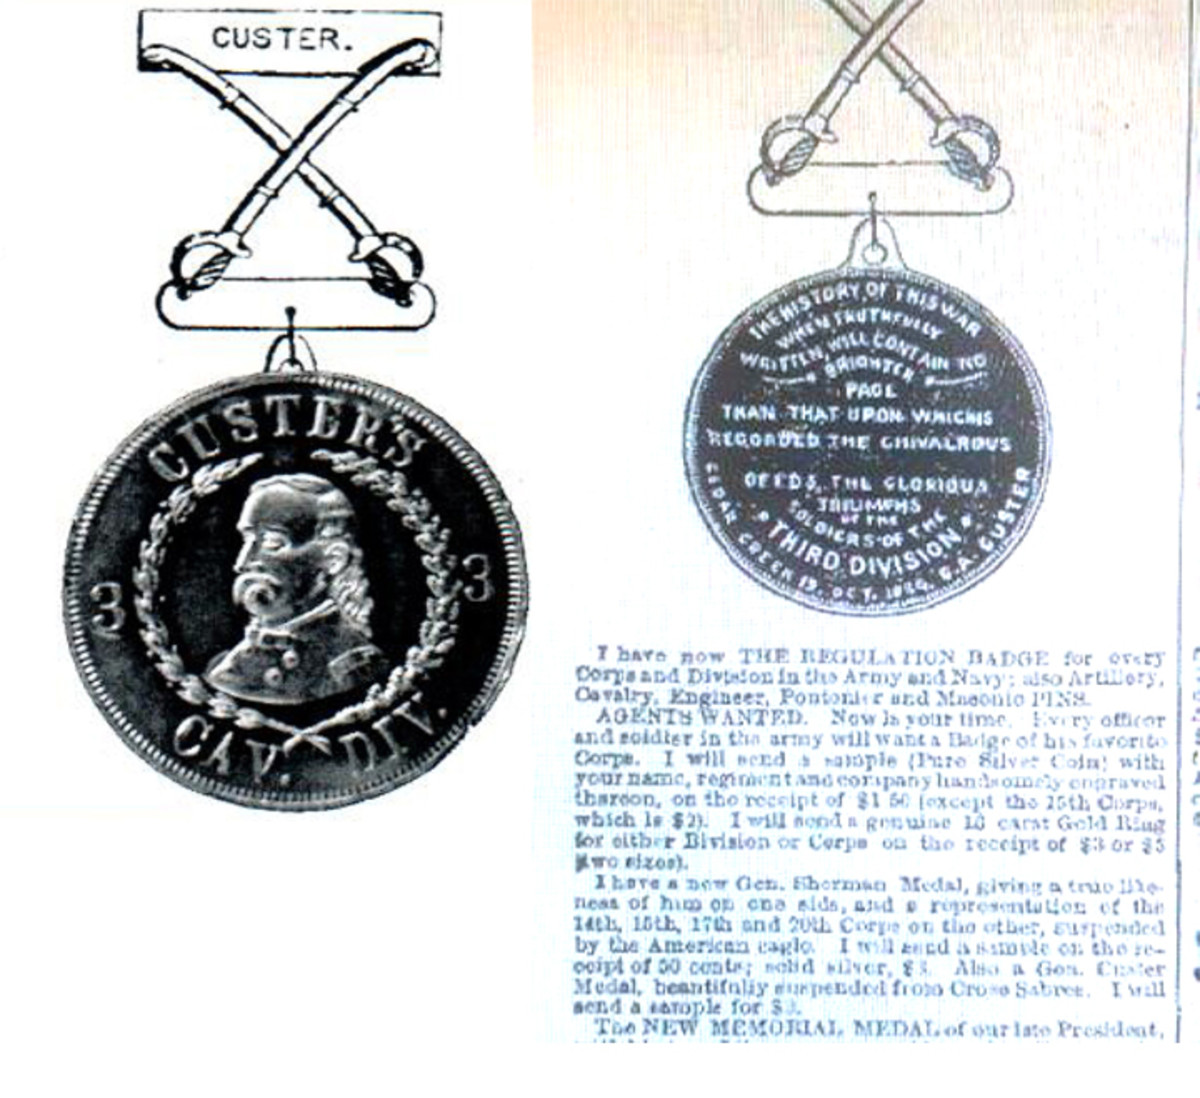 An advertisement in Frank Leslie's Illustrated Weekly advertised the unofficial medal for sale.